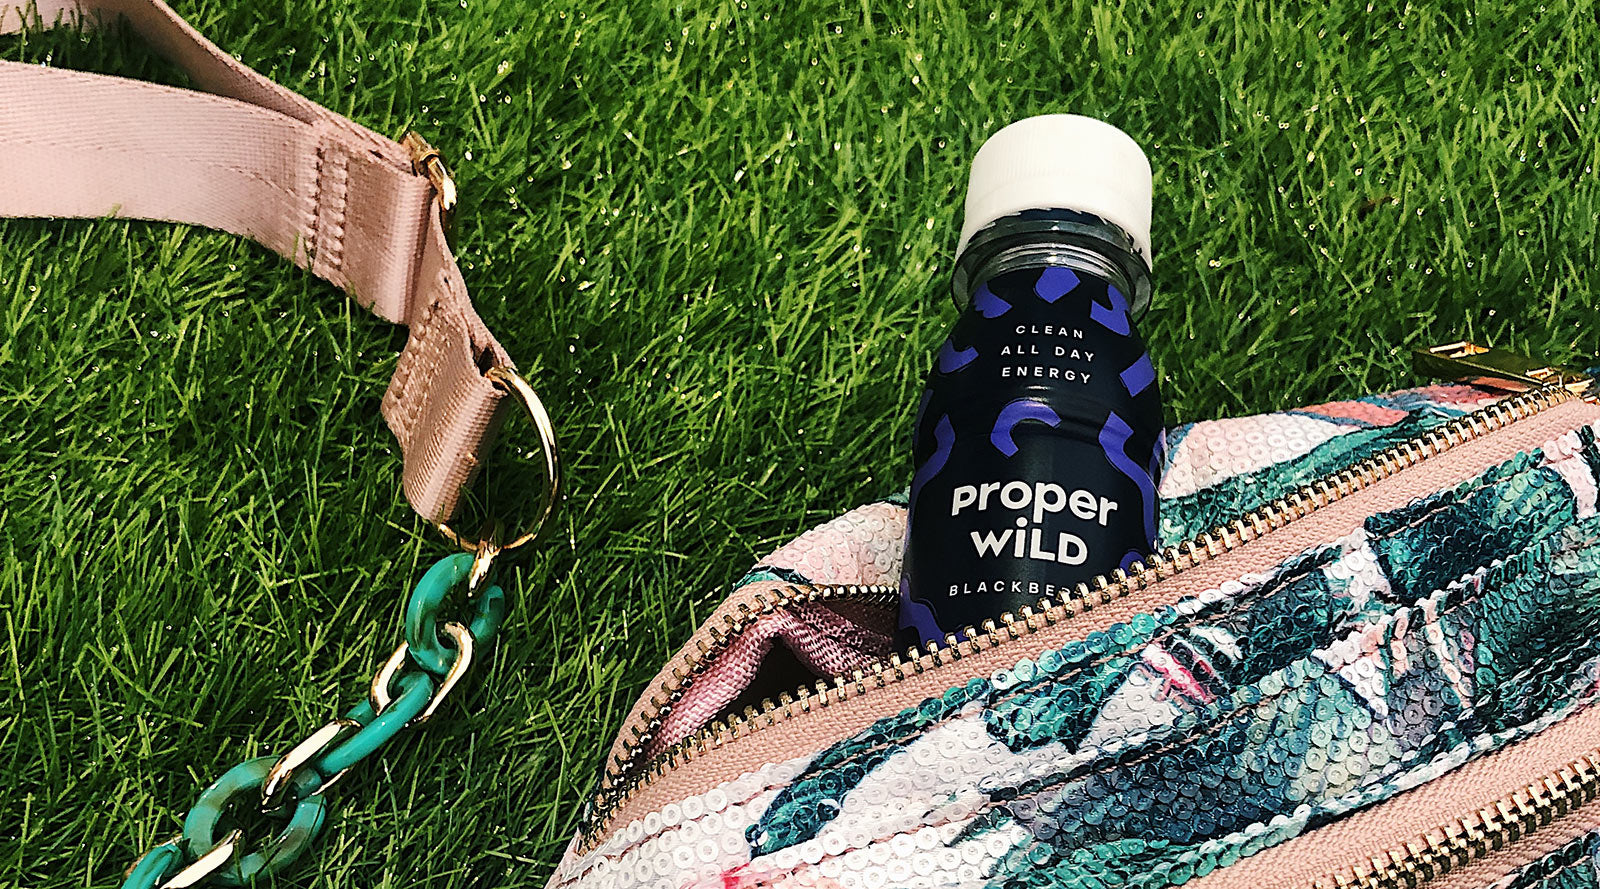 Proper Wild Bottles on grass in a fannypack